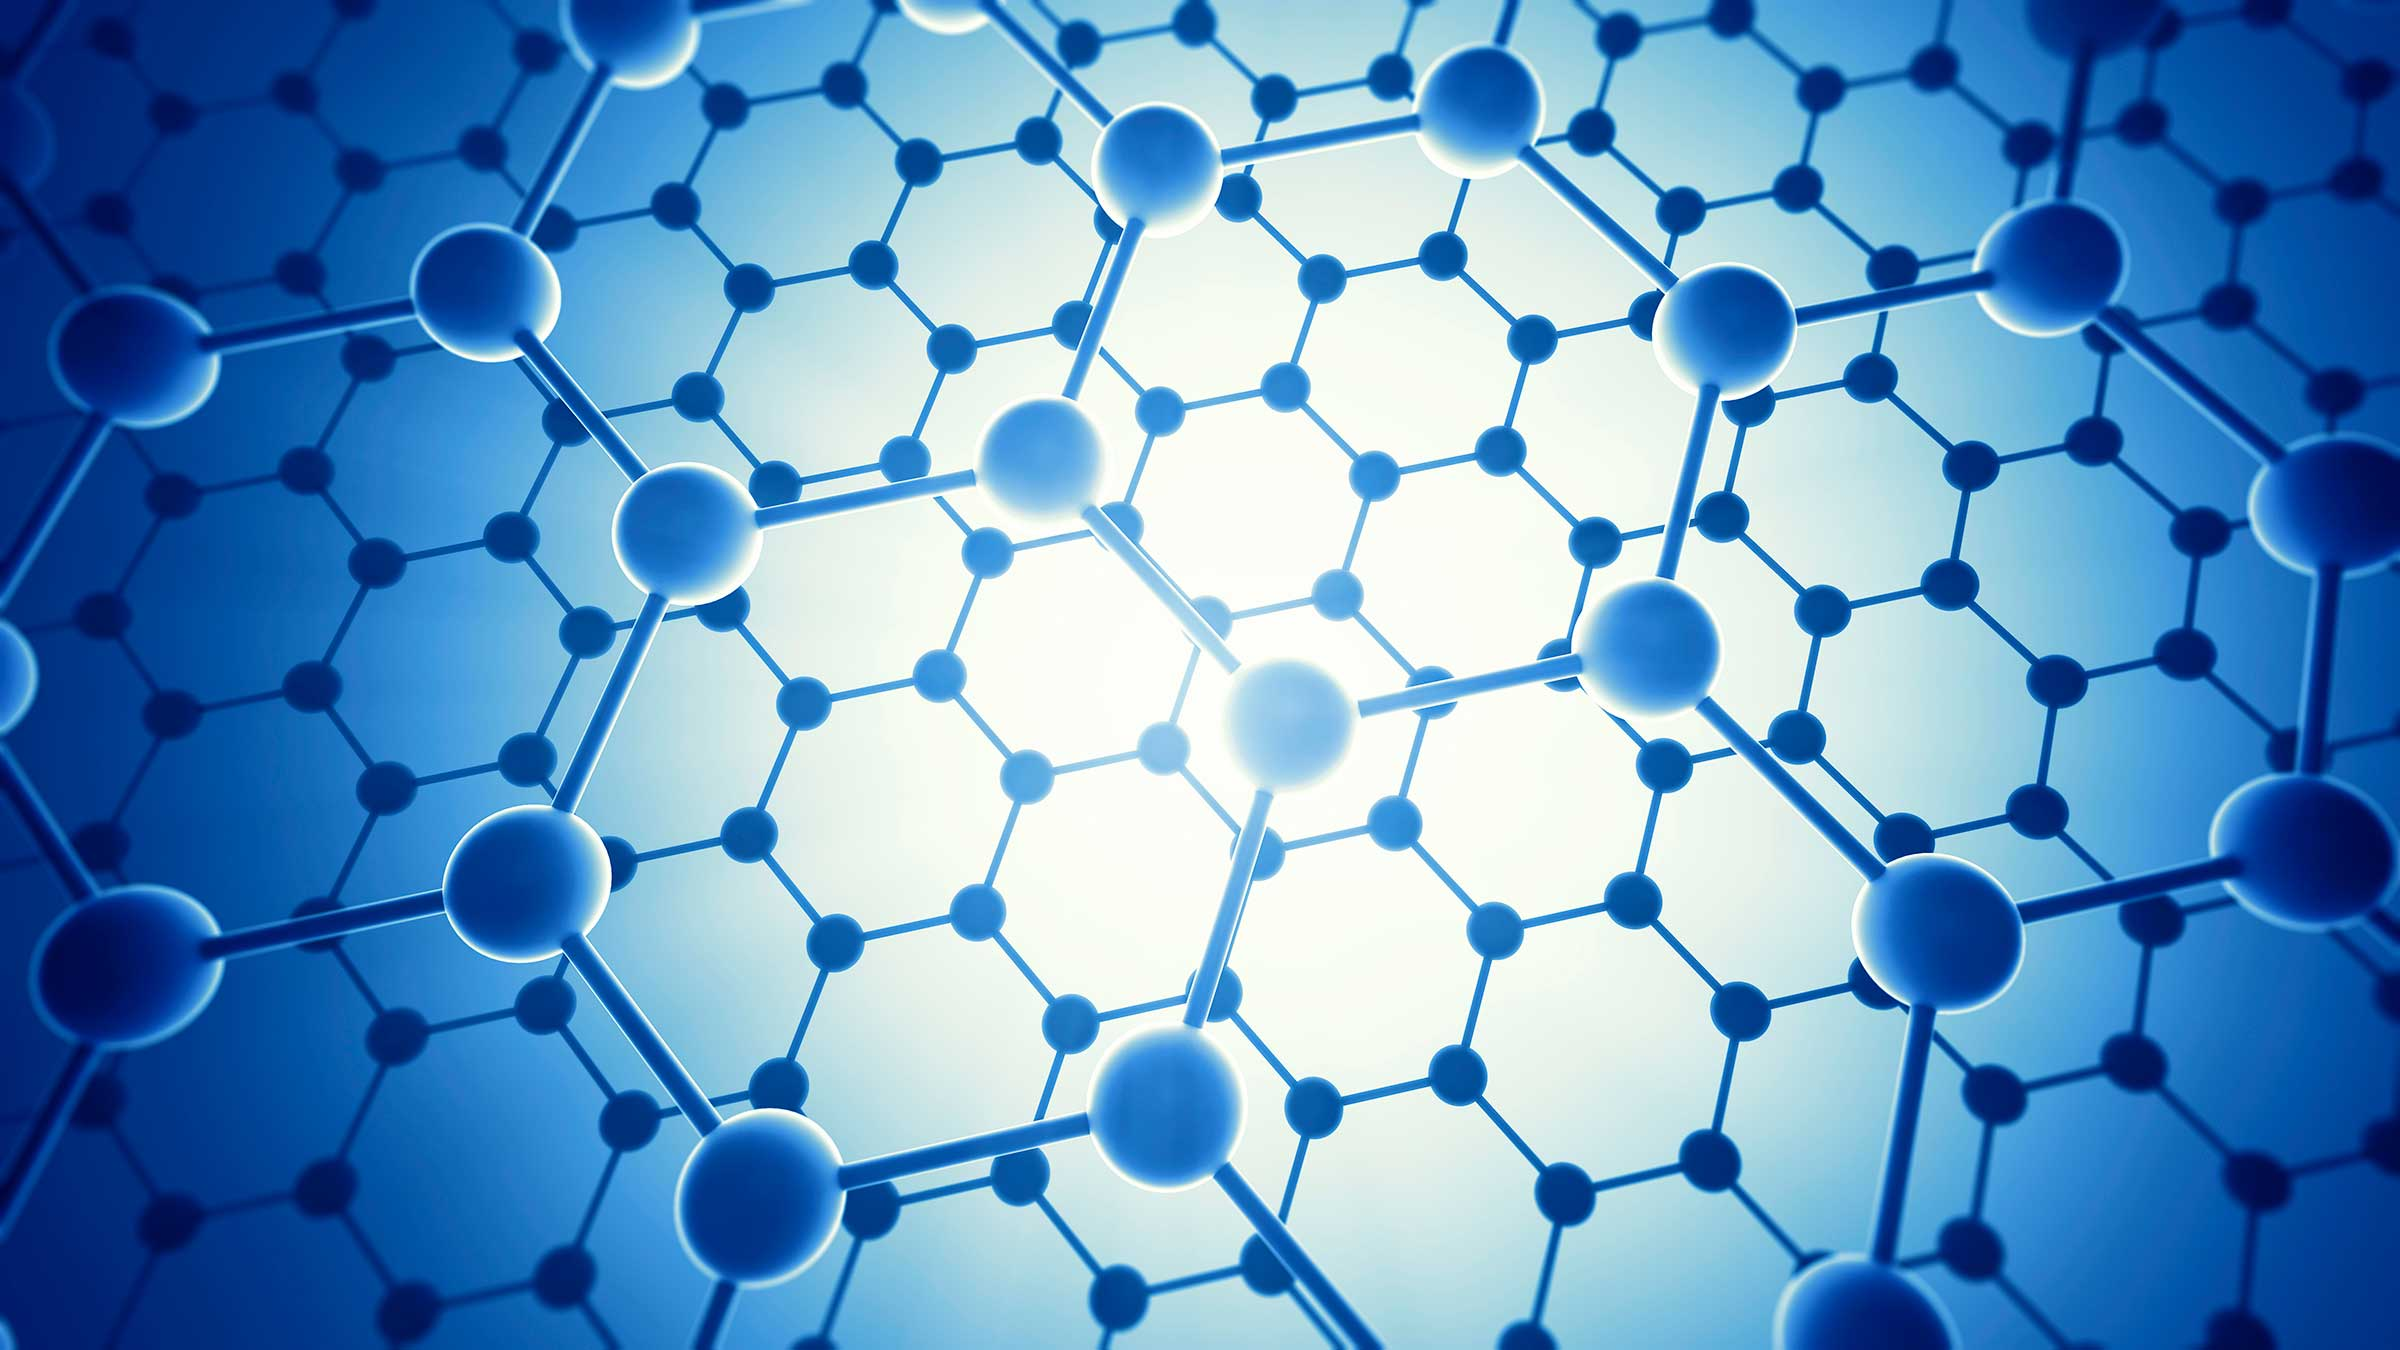 graphene nano material with macro potential